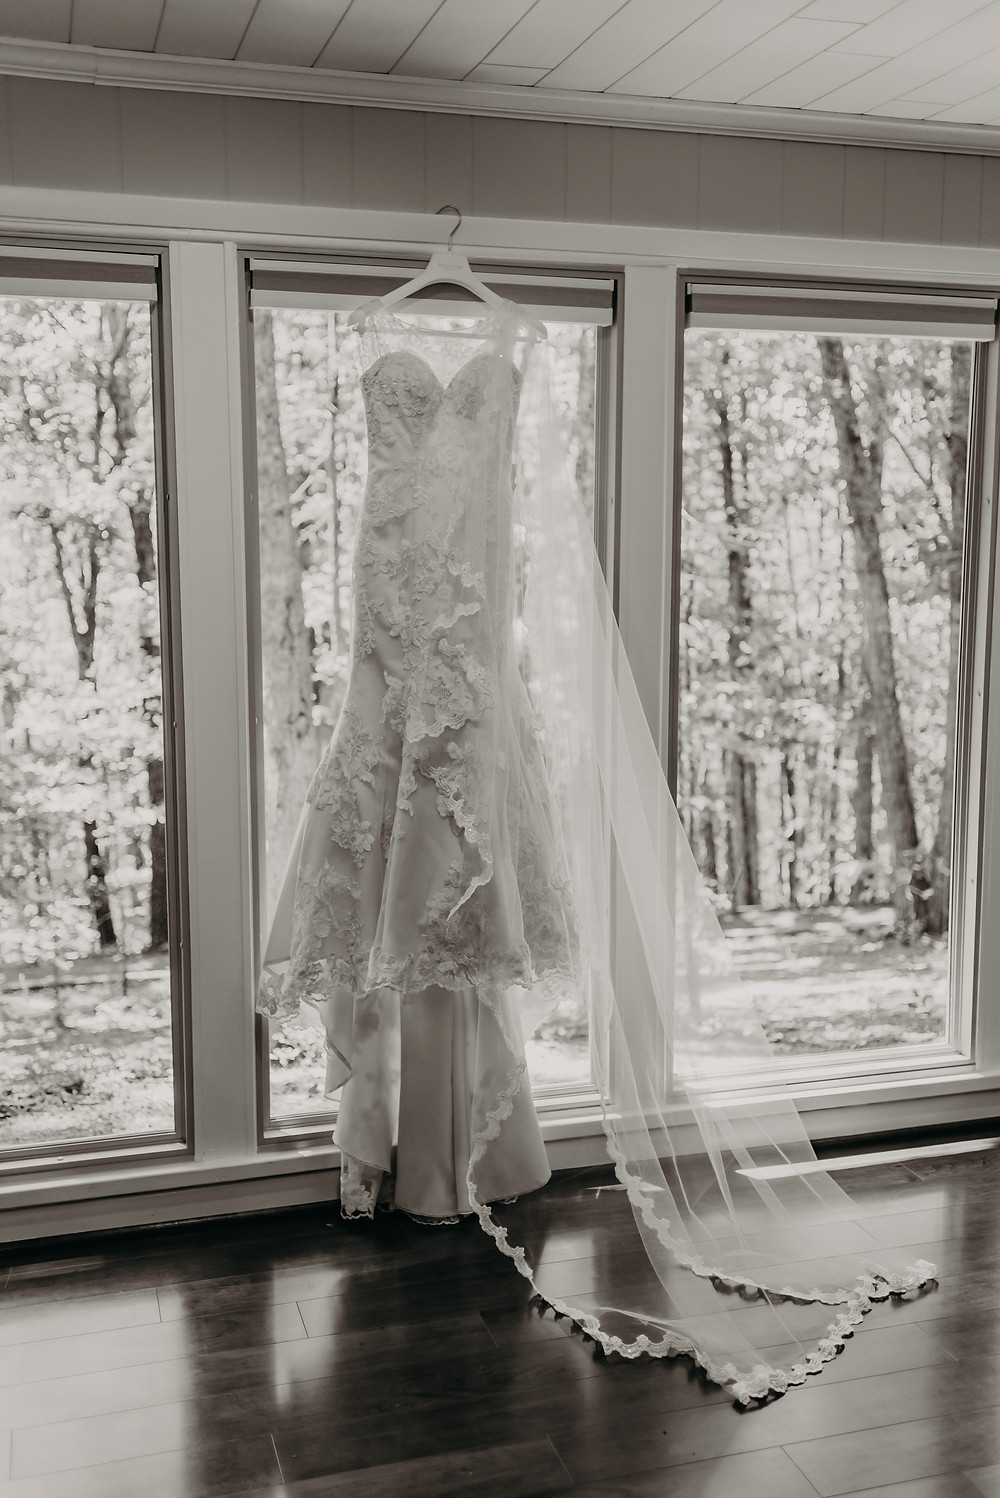 Black and white photo of a lace wedding dress